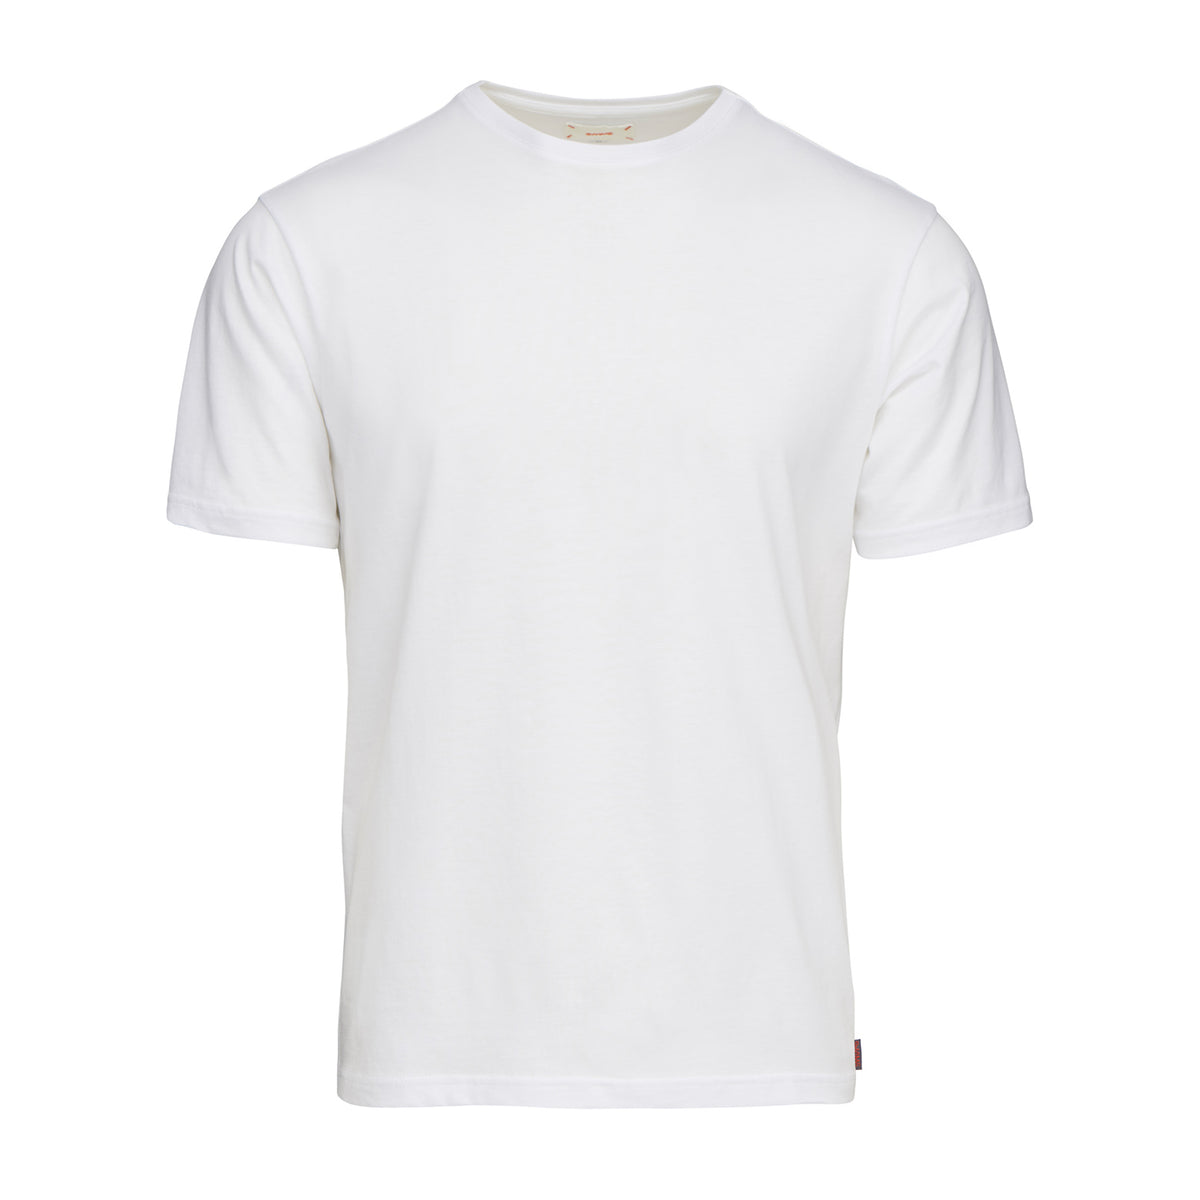 Breeze T-Shirt - background::white,variant::White